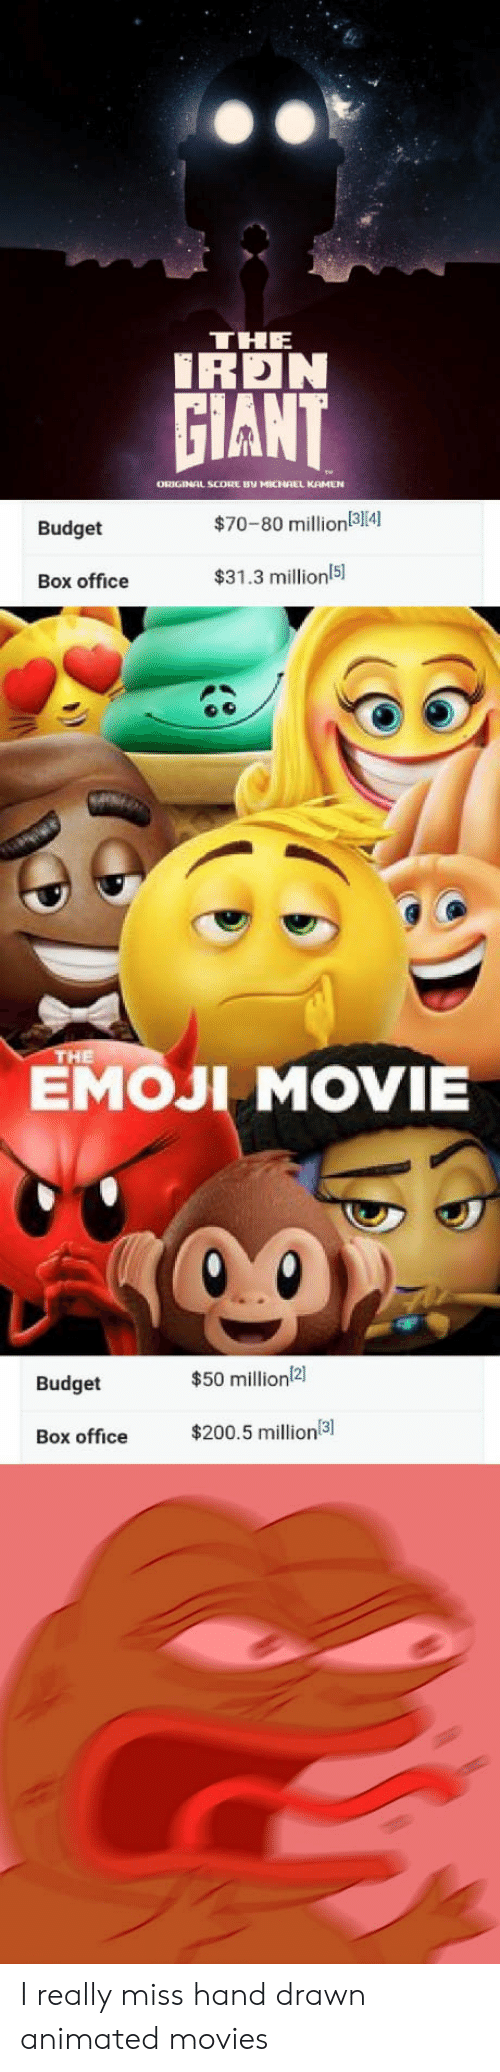 Bailey Jay, Emoji, and Movies: THE  İRDN  GIANT  ORIGINAL SCODRE BV MICHAEL KAMEN  Budget  $70-80 million(314)  Box office  $31.3 millionl5  151  EMOJI MOVIE  НЕ  Budget  $50 million2]  Box office $200.5 million I really miss hand drawn animated movies